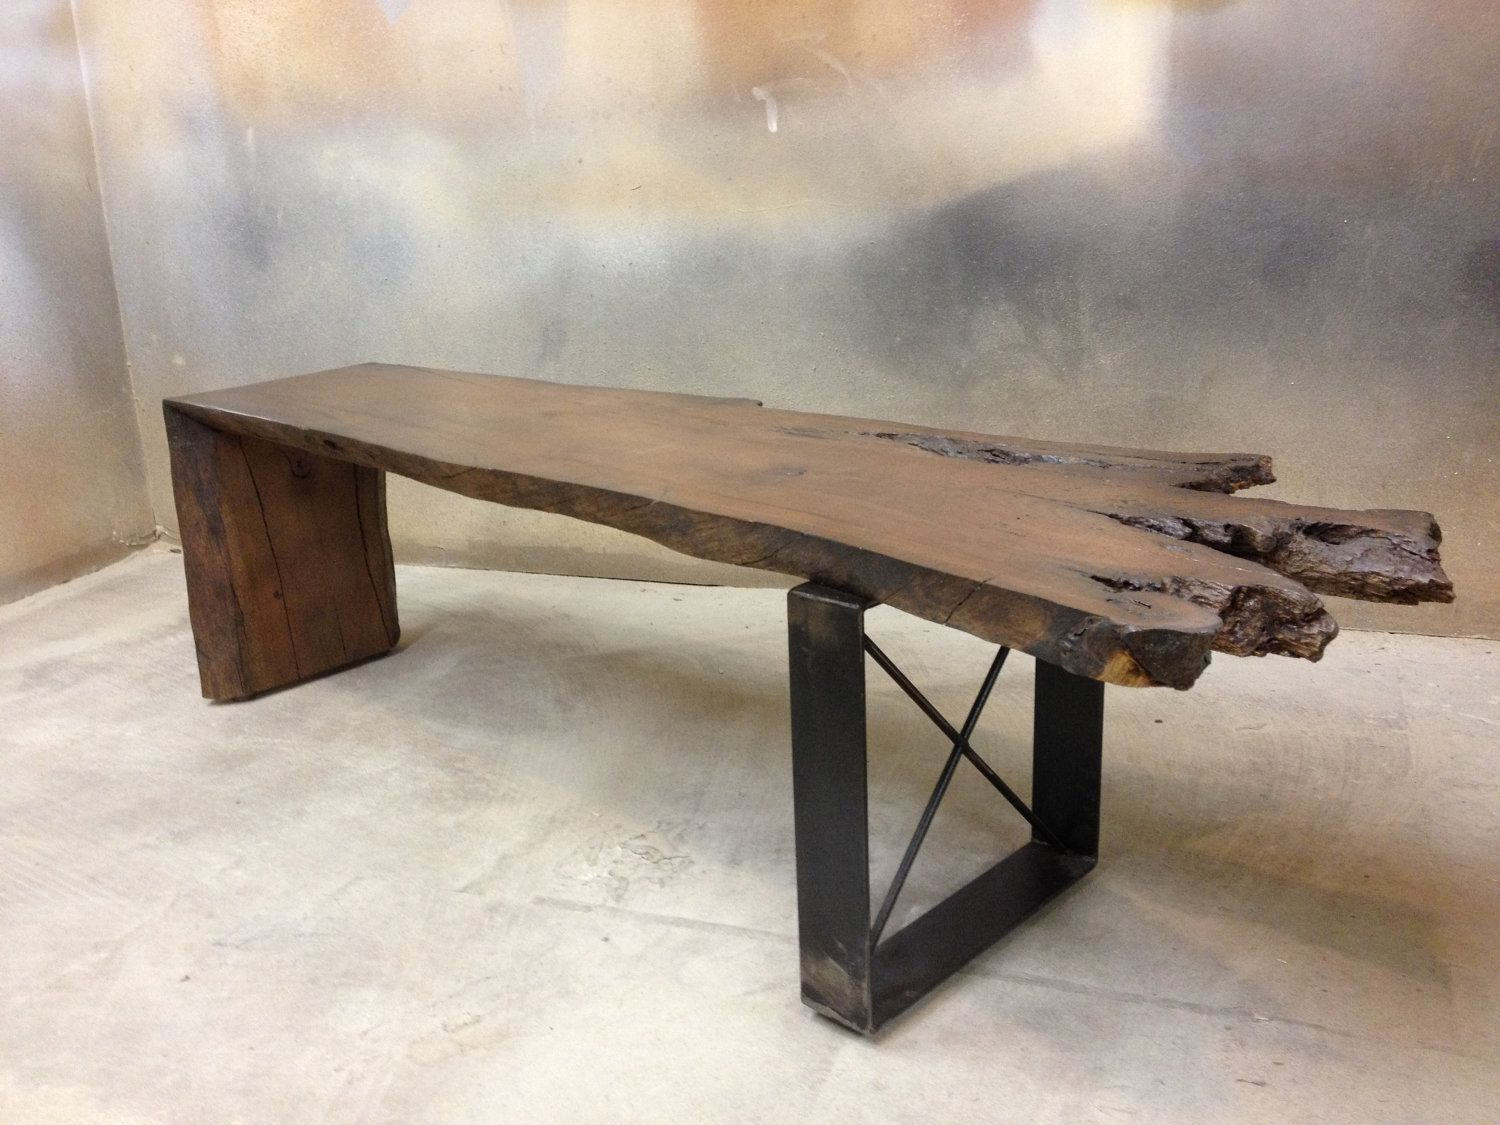 Modern Rustic Bench Handcrafted Wood